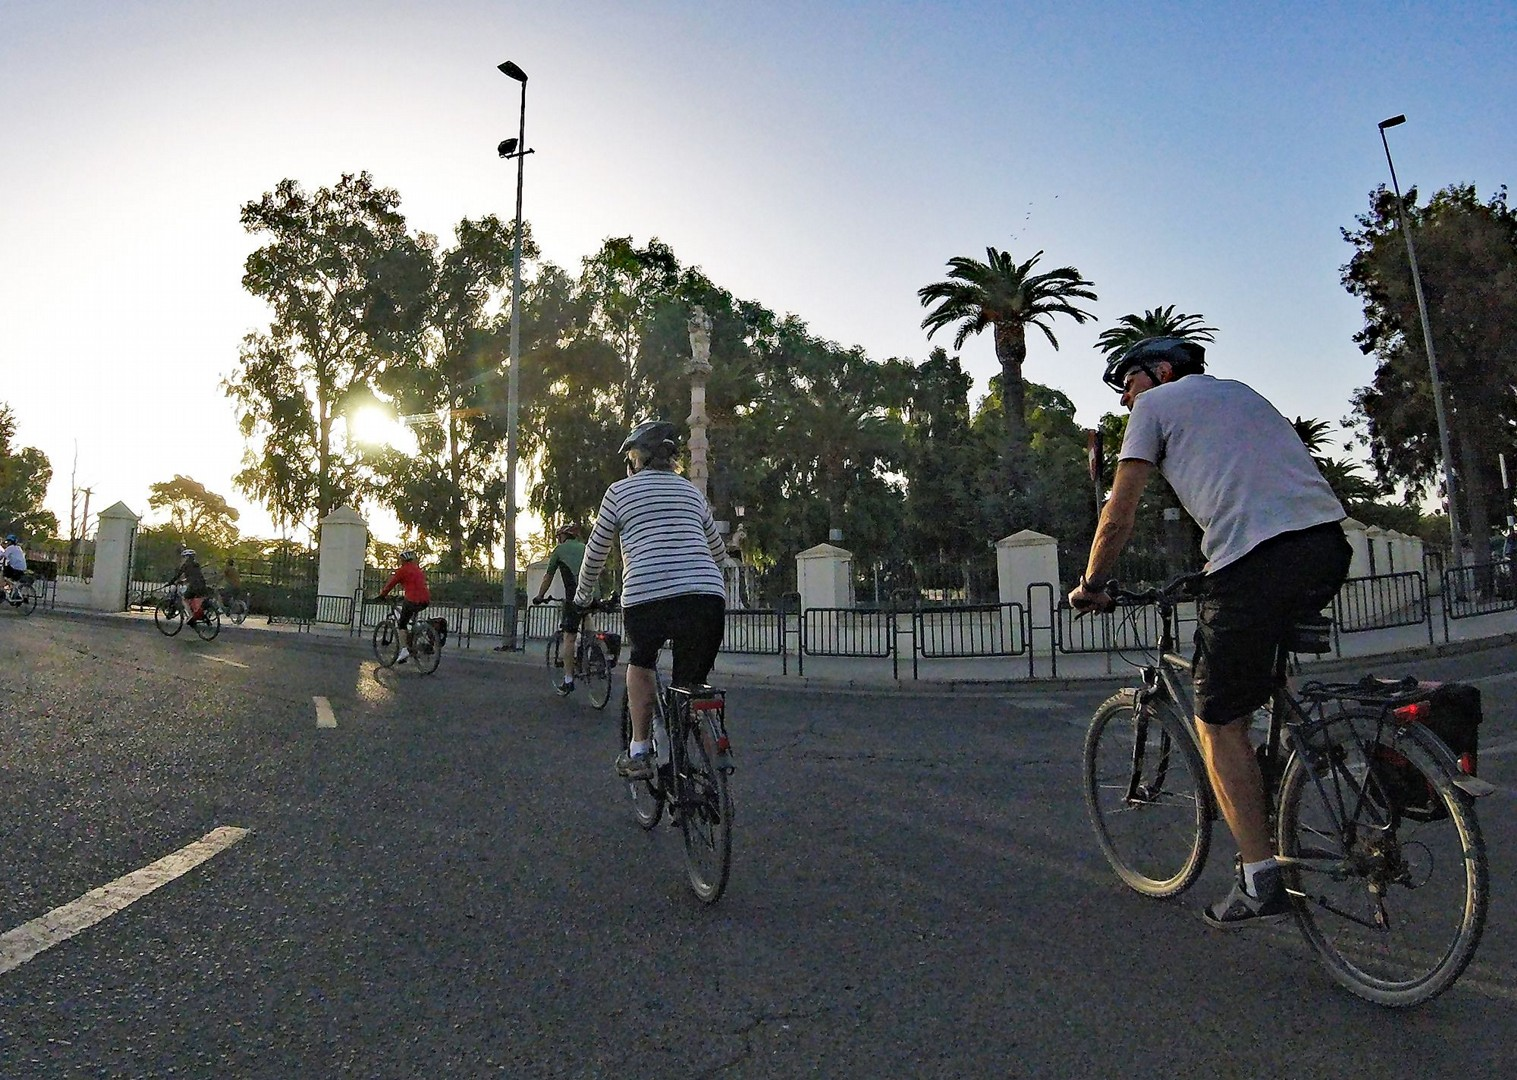 andalucia-granada-to-seville-guided-leisure-cycling-holiday-in-spain.jpg - Spain - Granada to Seville - Leisure Cycling